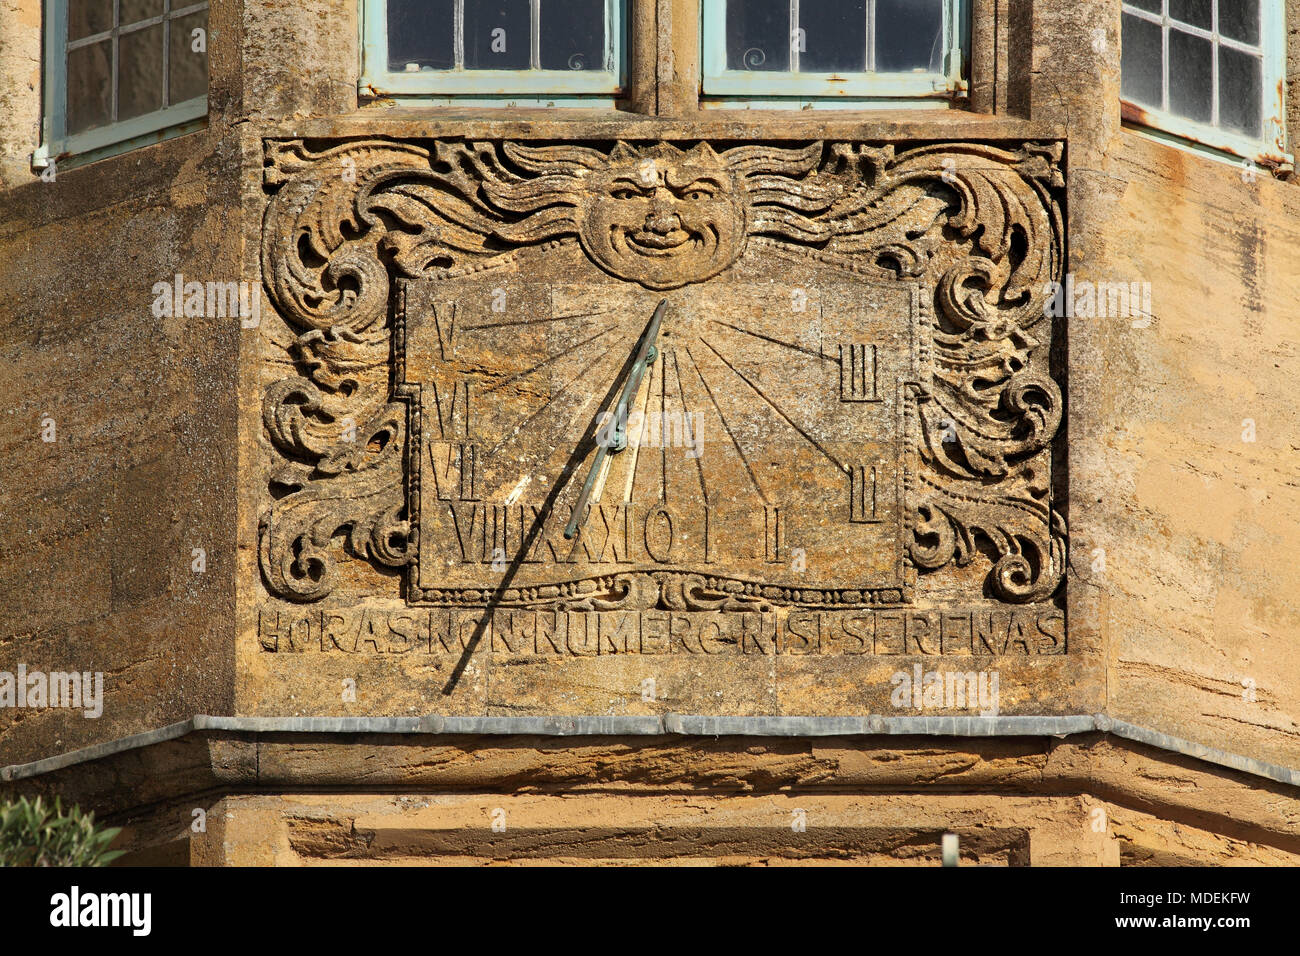 A sundial on a house wall, with Roman numerals, an anthropomorphic image of the sun, and swirling scrollwork, Lyme Regis, Dorset. - Stock Image